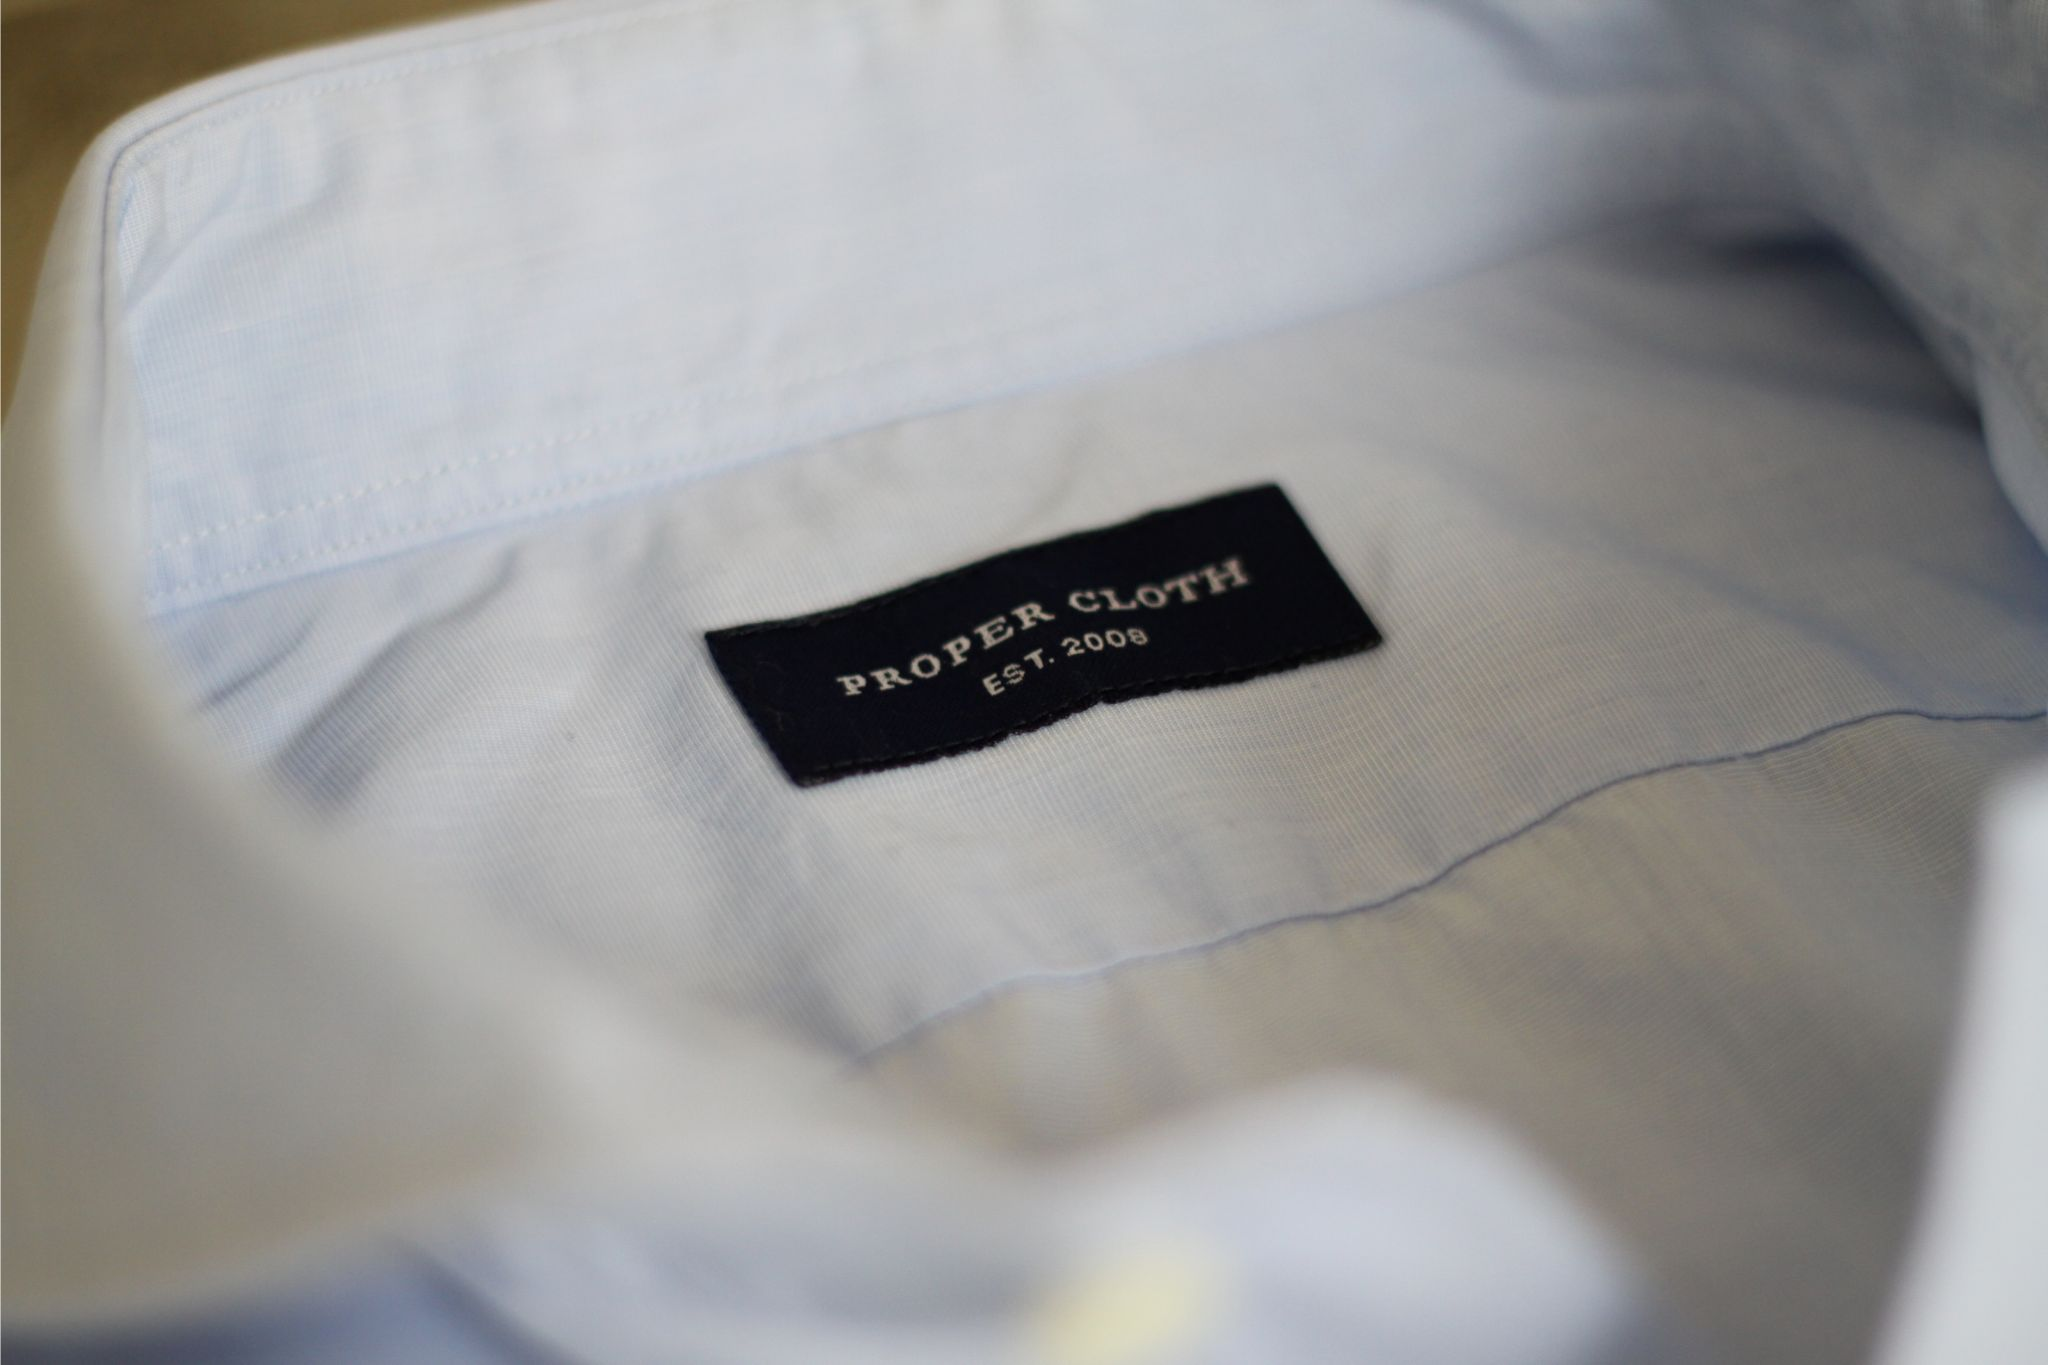 Proper Cloth custom shirting